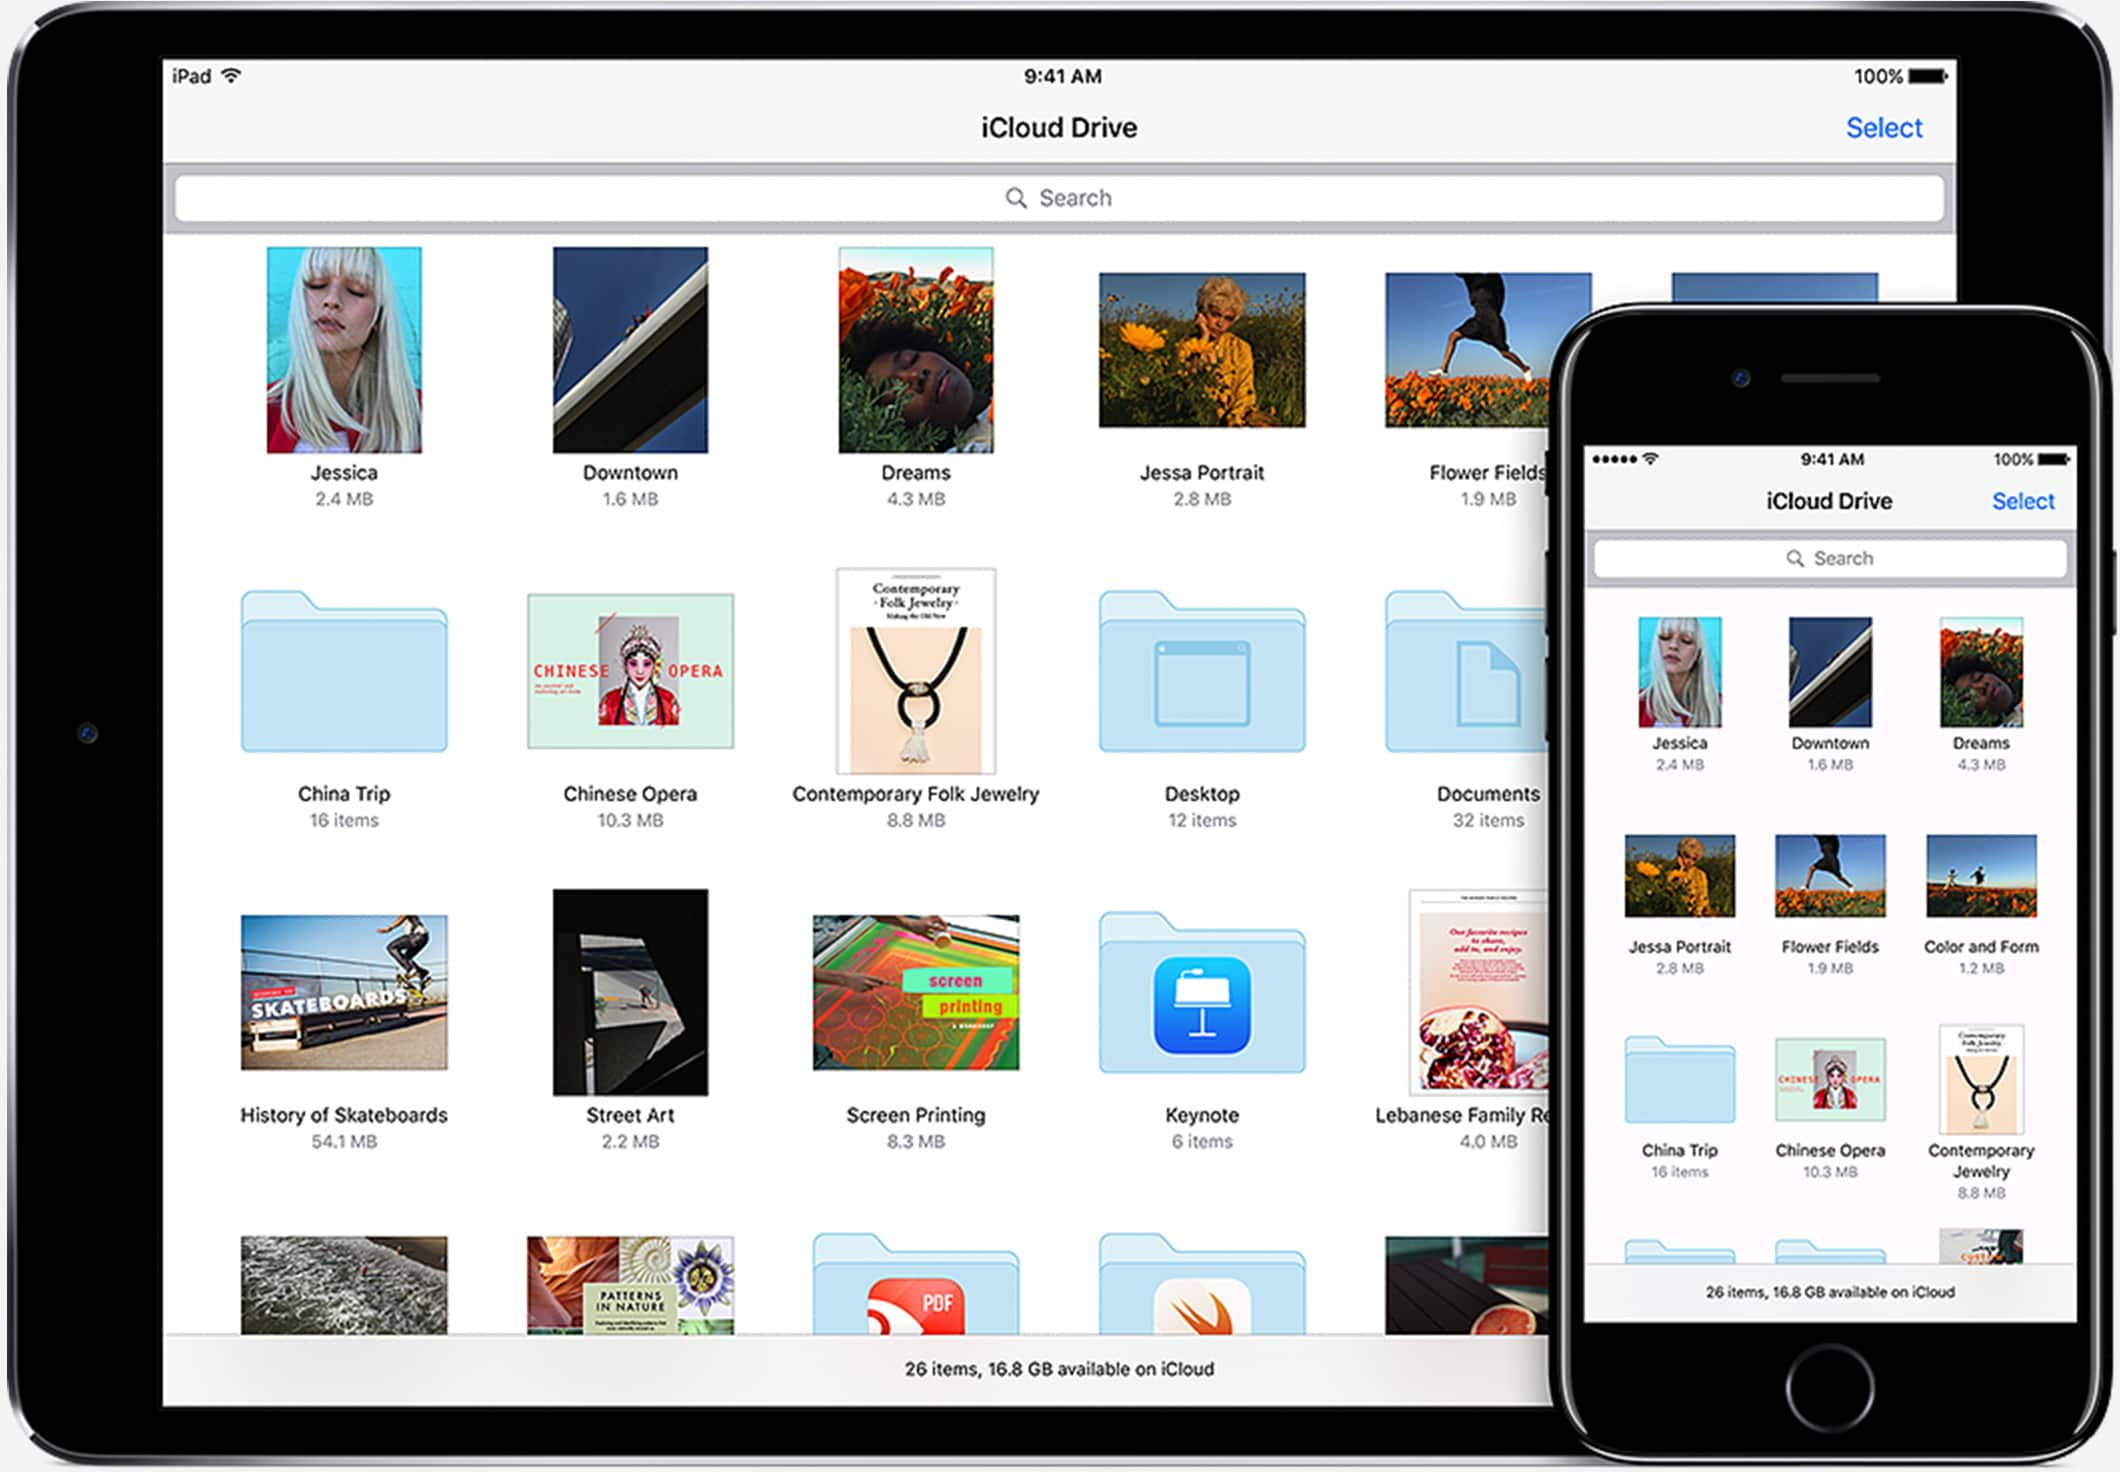 You Can Even Use Airdrop To Quickly Share Files Wirelessly Between Devices  Iphone And Ipad Pro Were Designed To Work Not Only With Each Other,